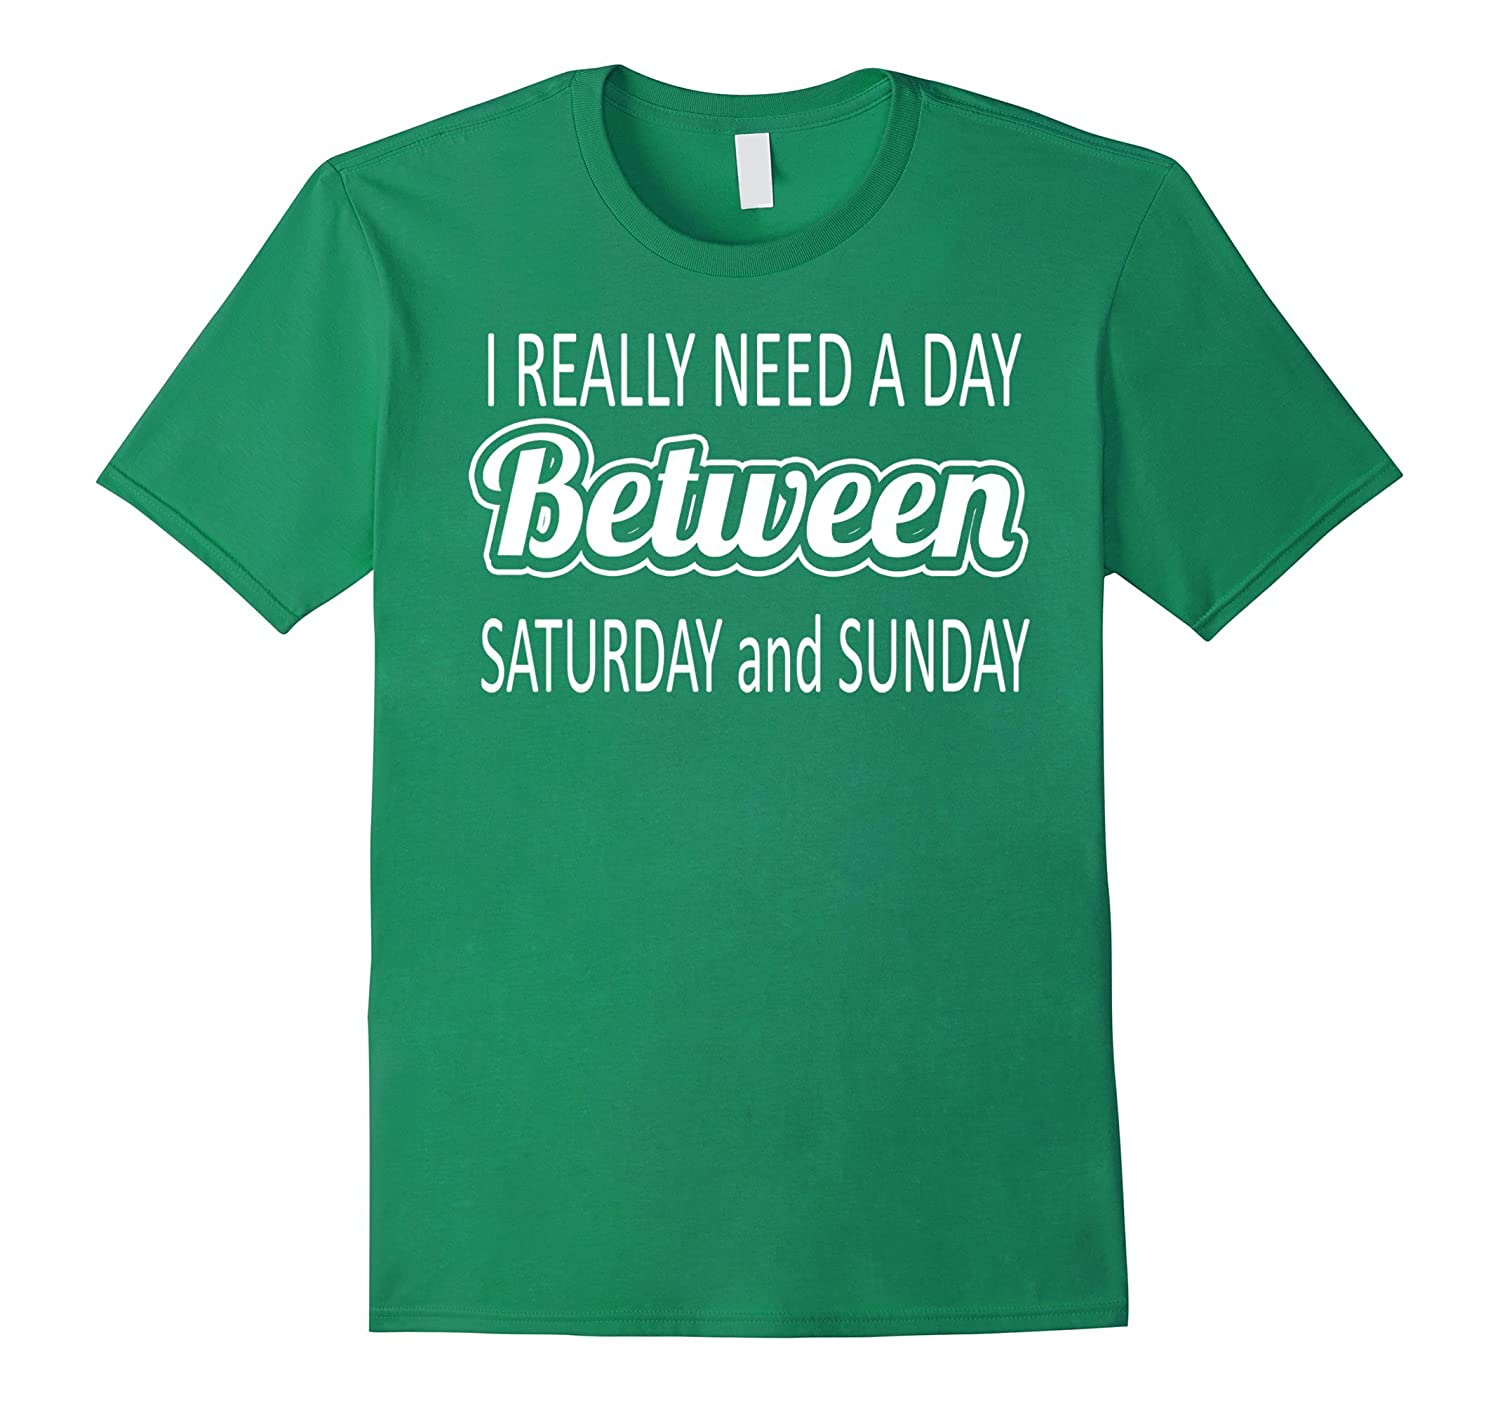 I really need a day between saturday and sunday-RT